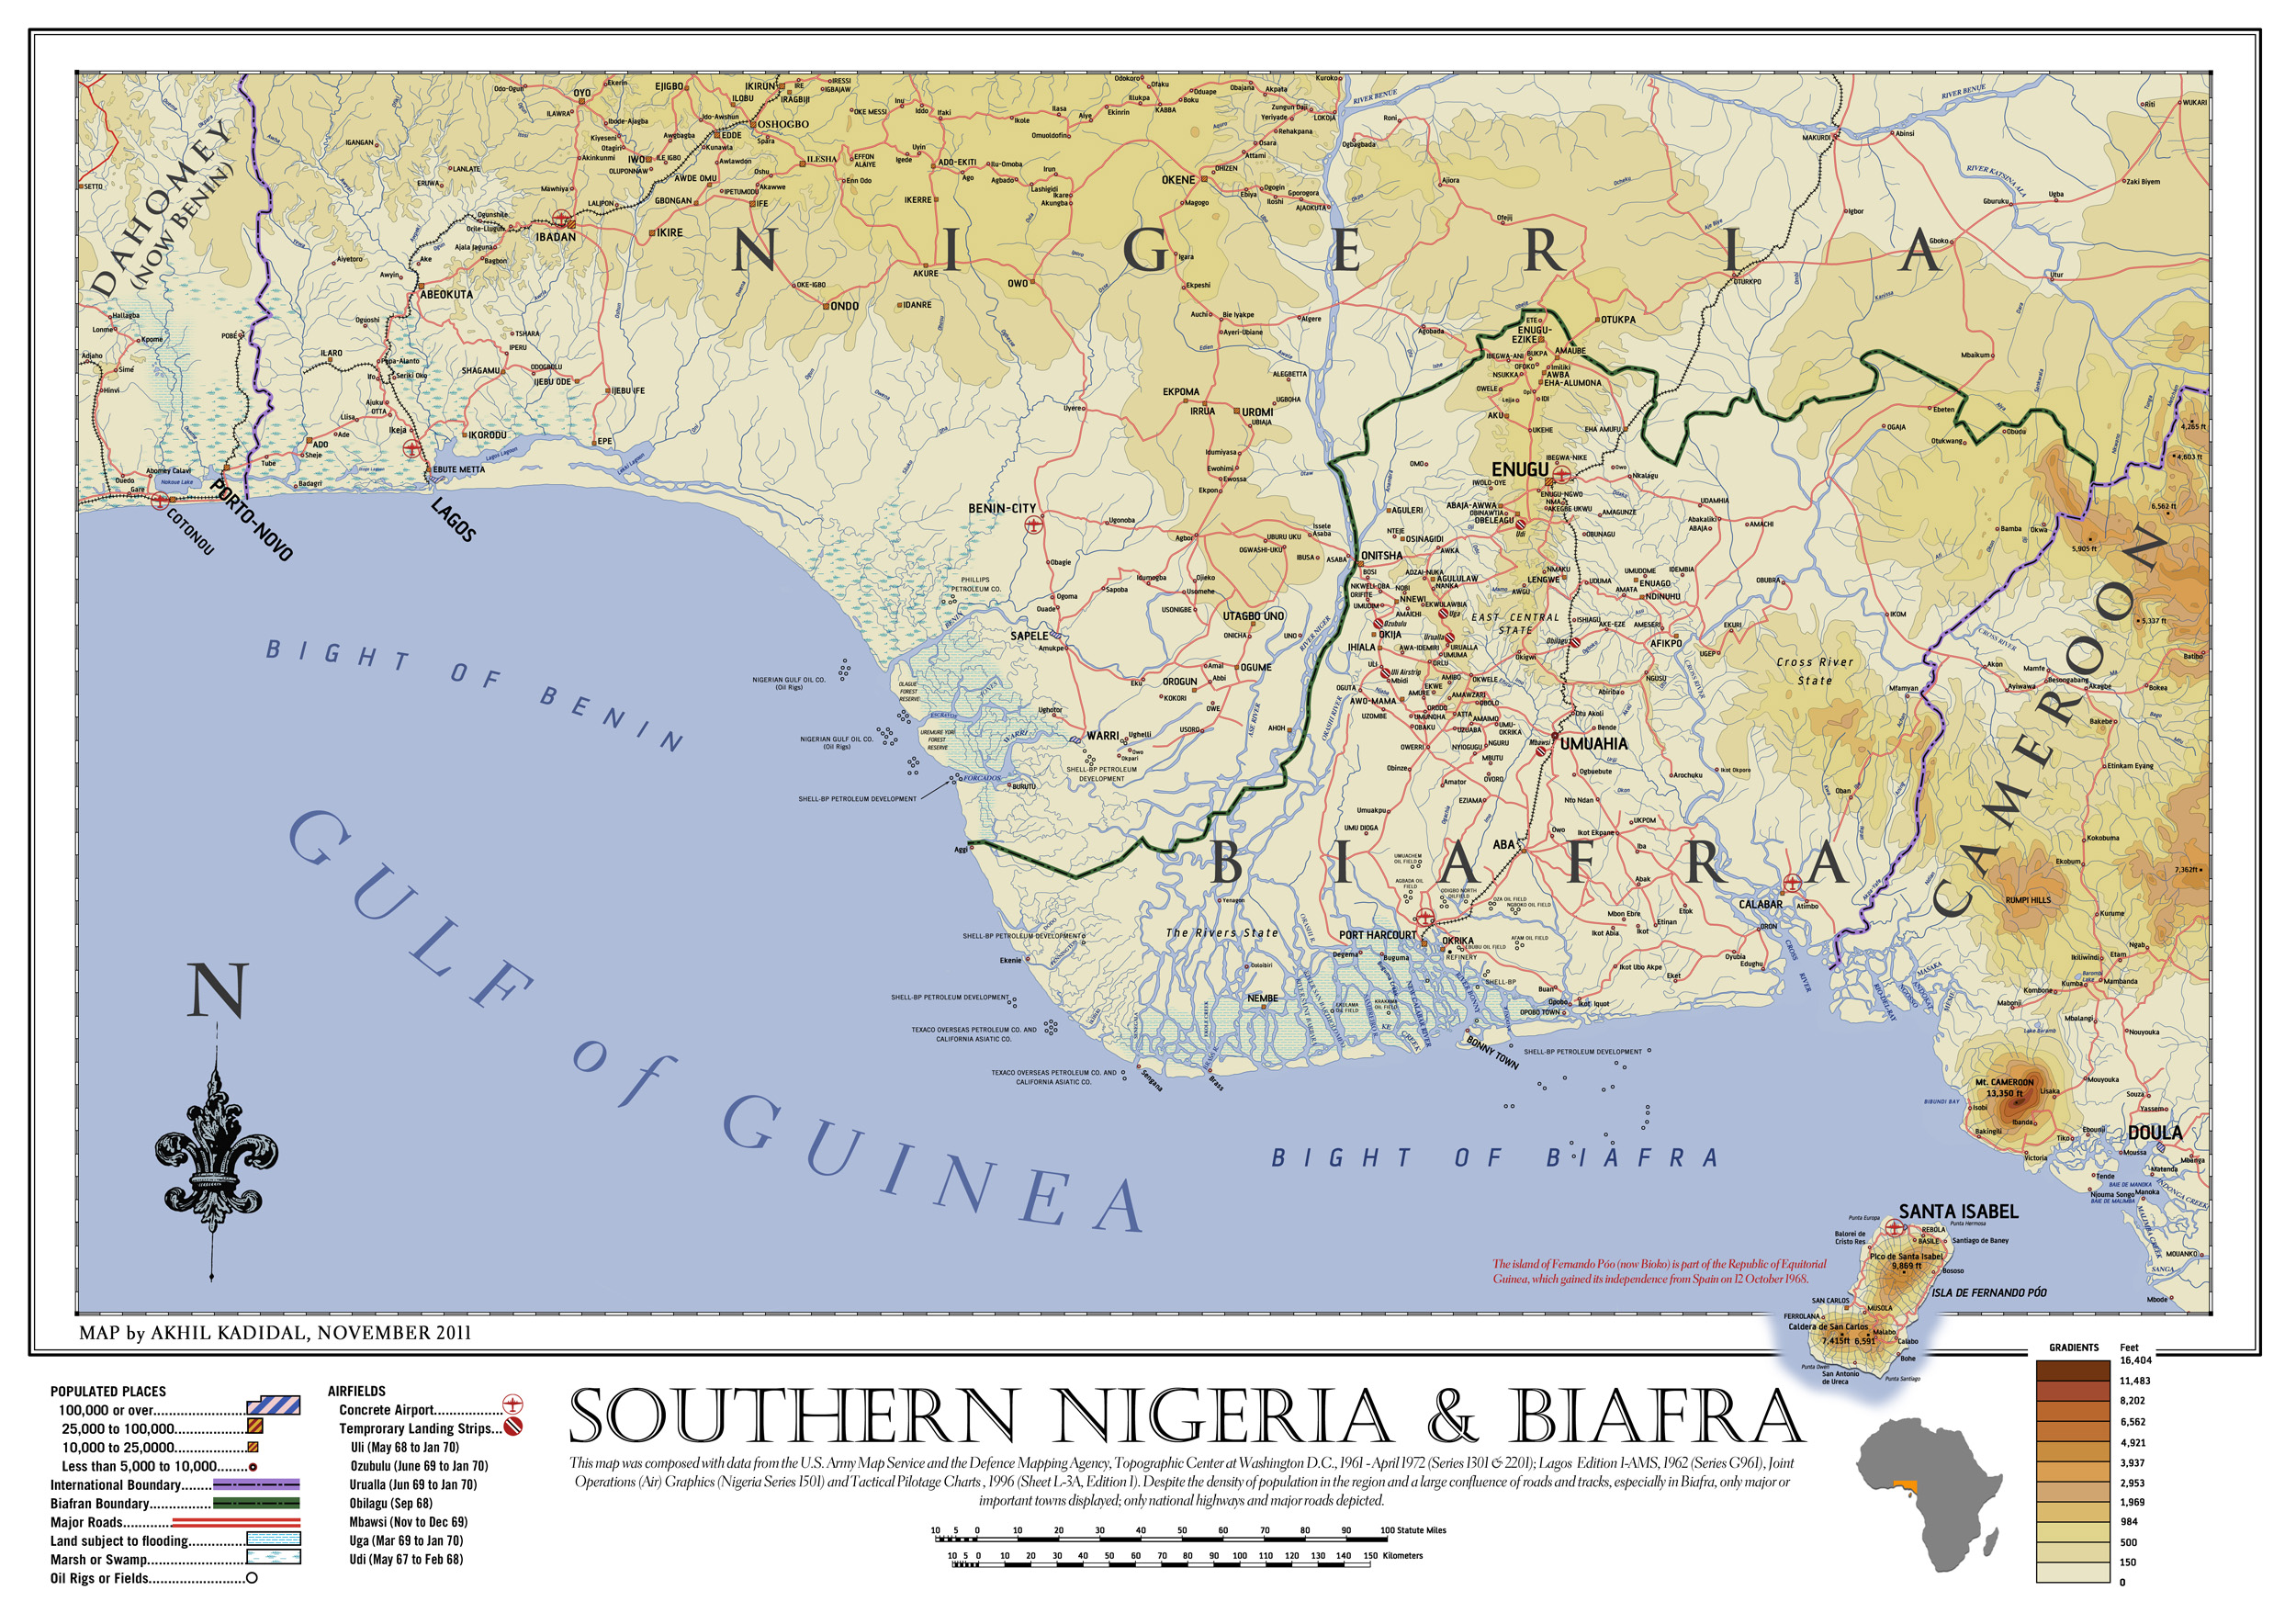 The war in biafra hermes wings what ccuart Choice Image